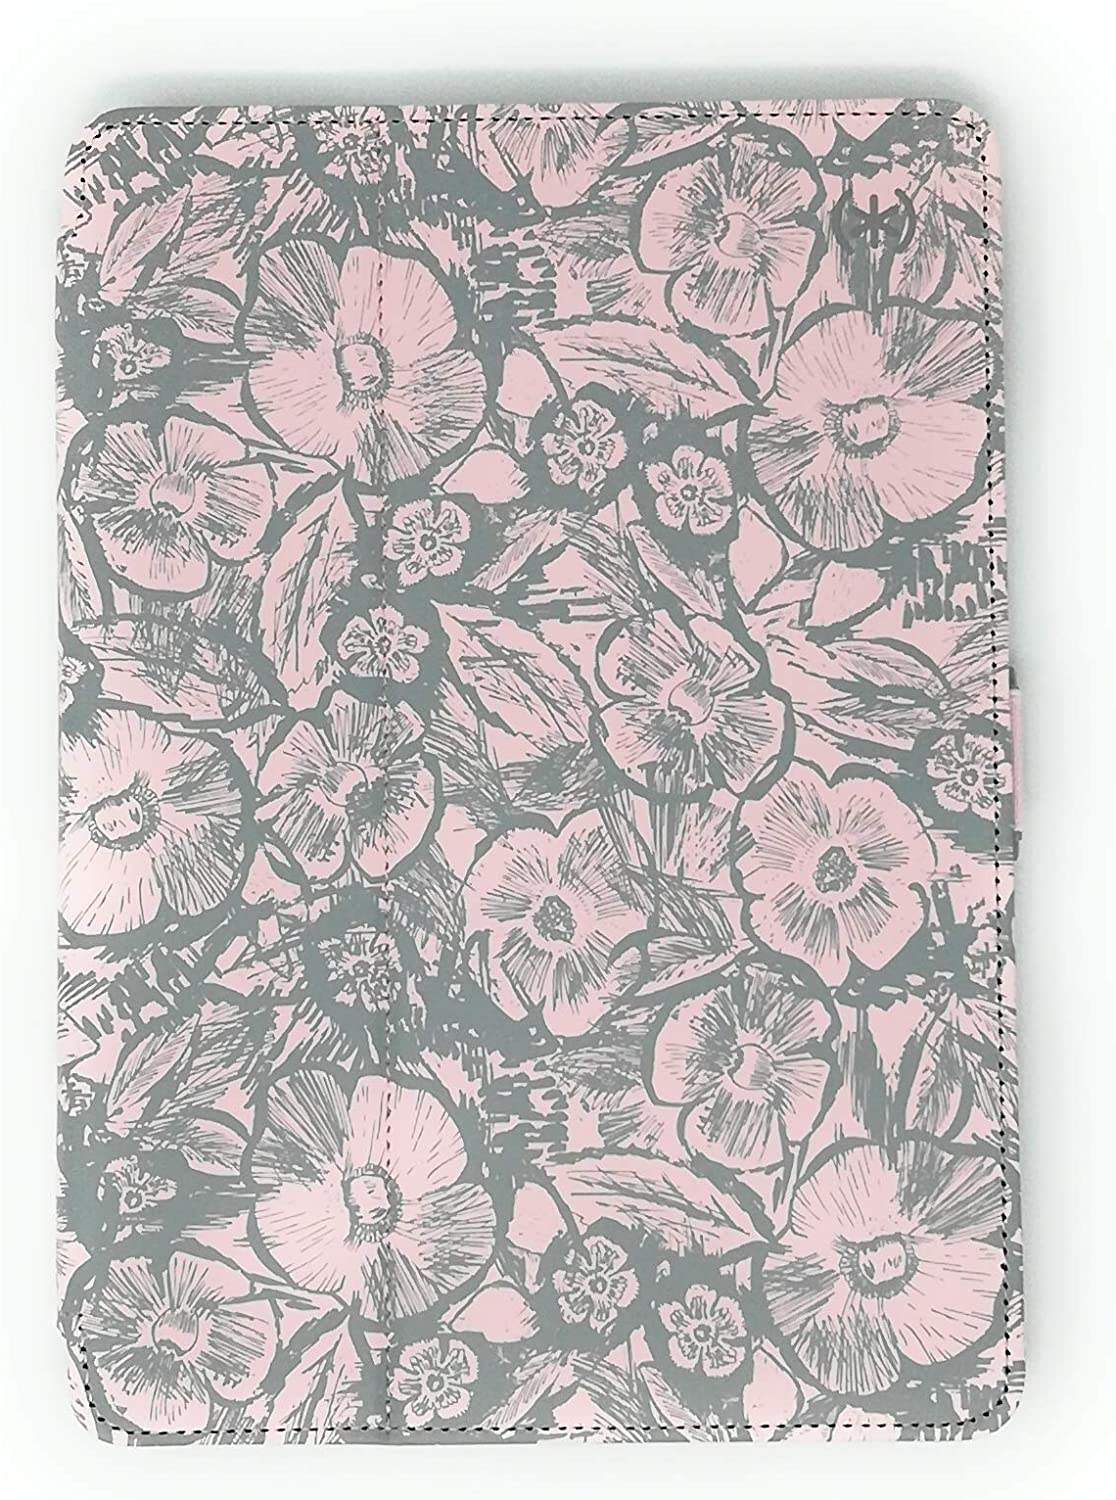 Speck Products Stylefolio Print iPad 9.7-Inch Case and Stand, (2017/2018), 9.7-Inch iPad Pro, iPad Air 2/Air, Sketchedfloral Nickel Grey/Quartz/Slate